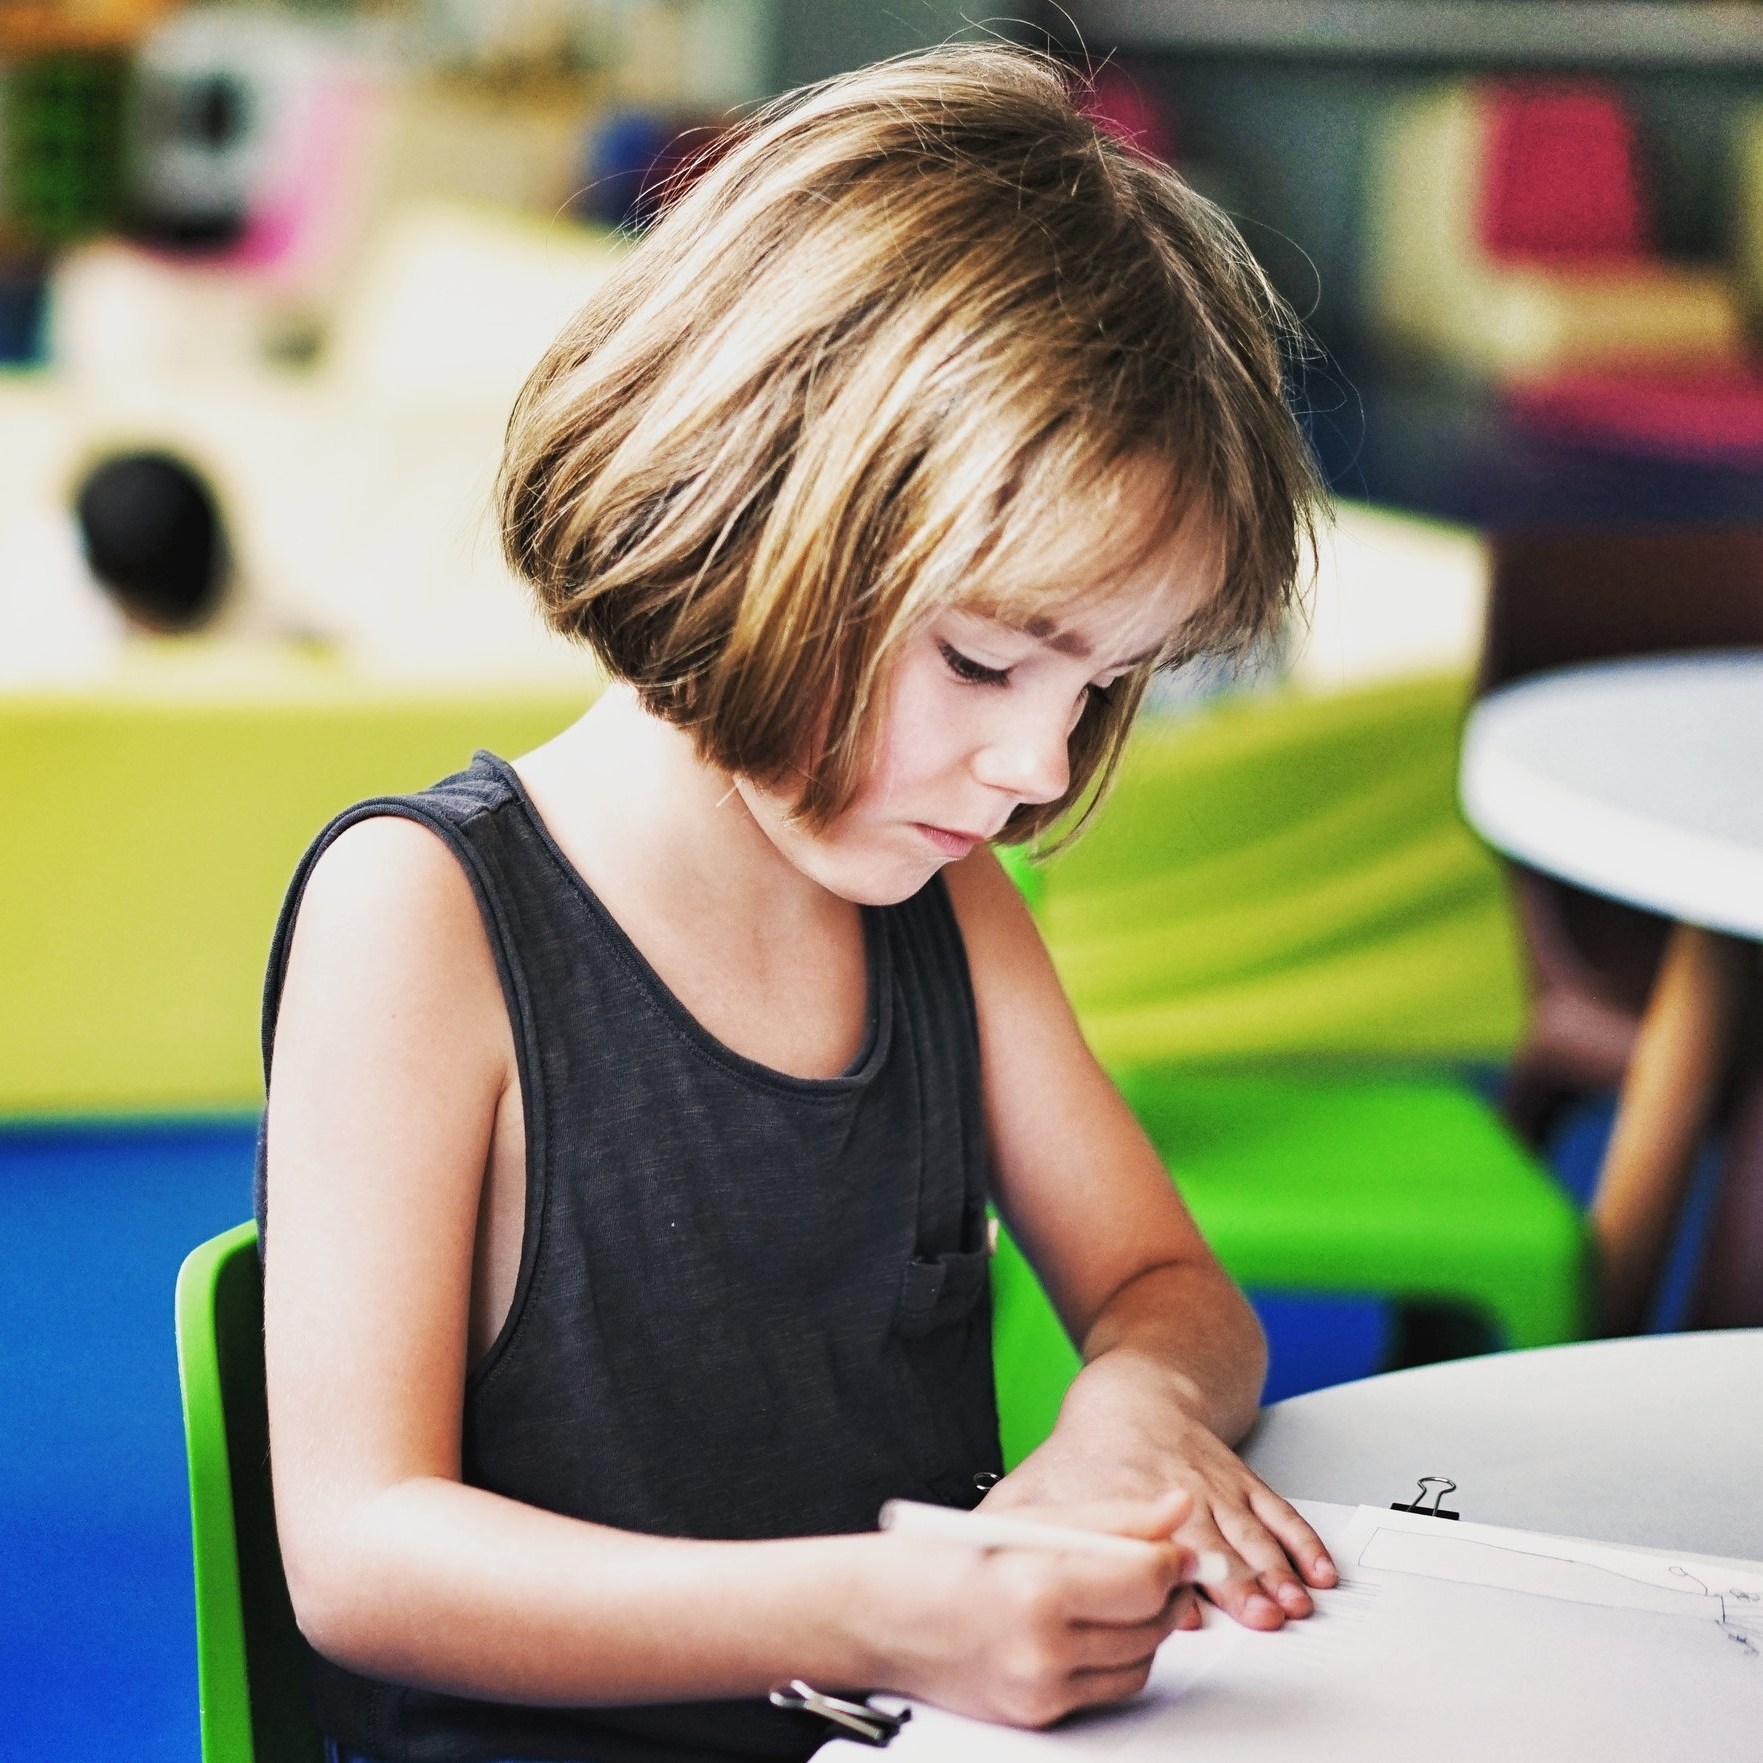 Young girl completing a school worksheet.